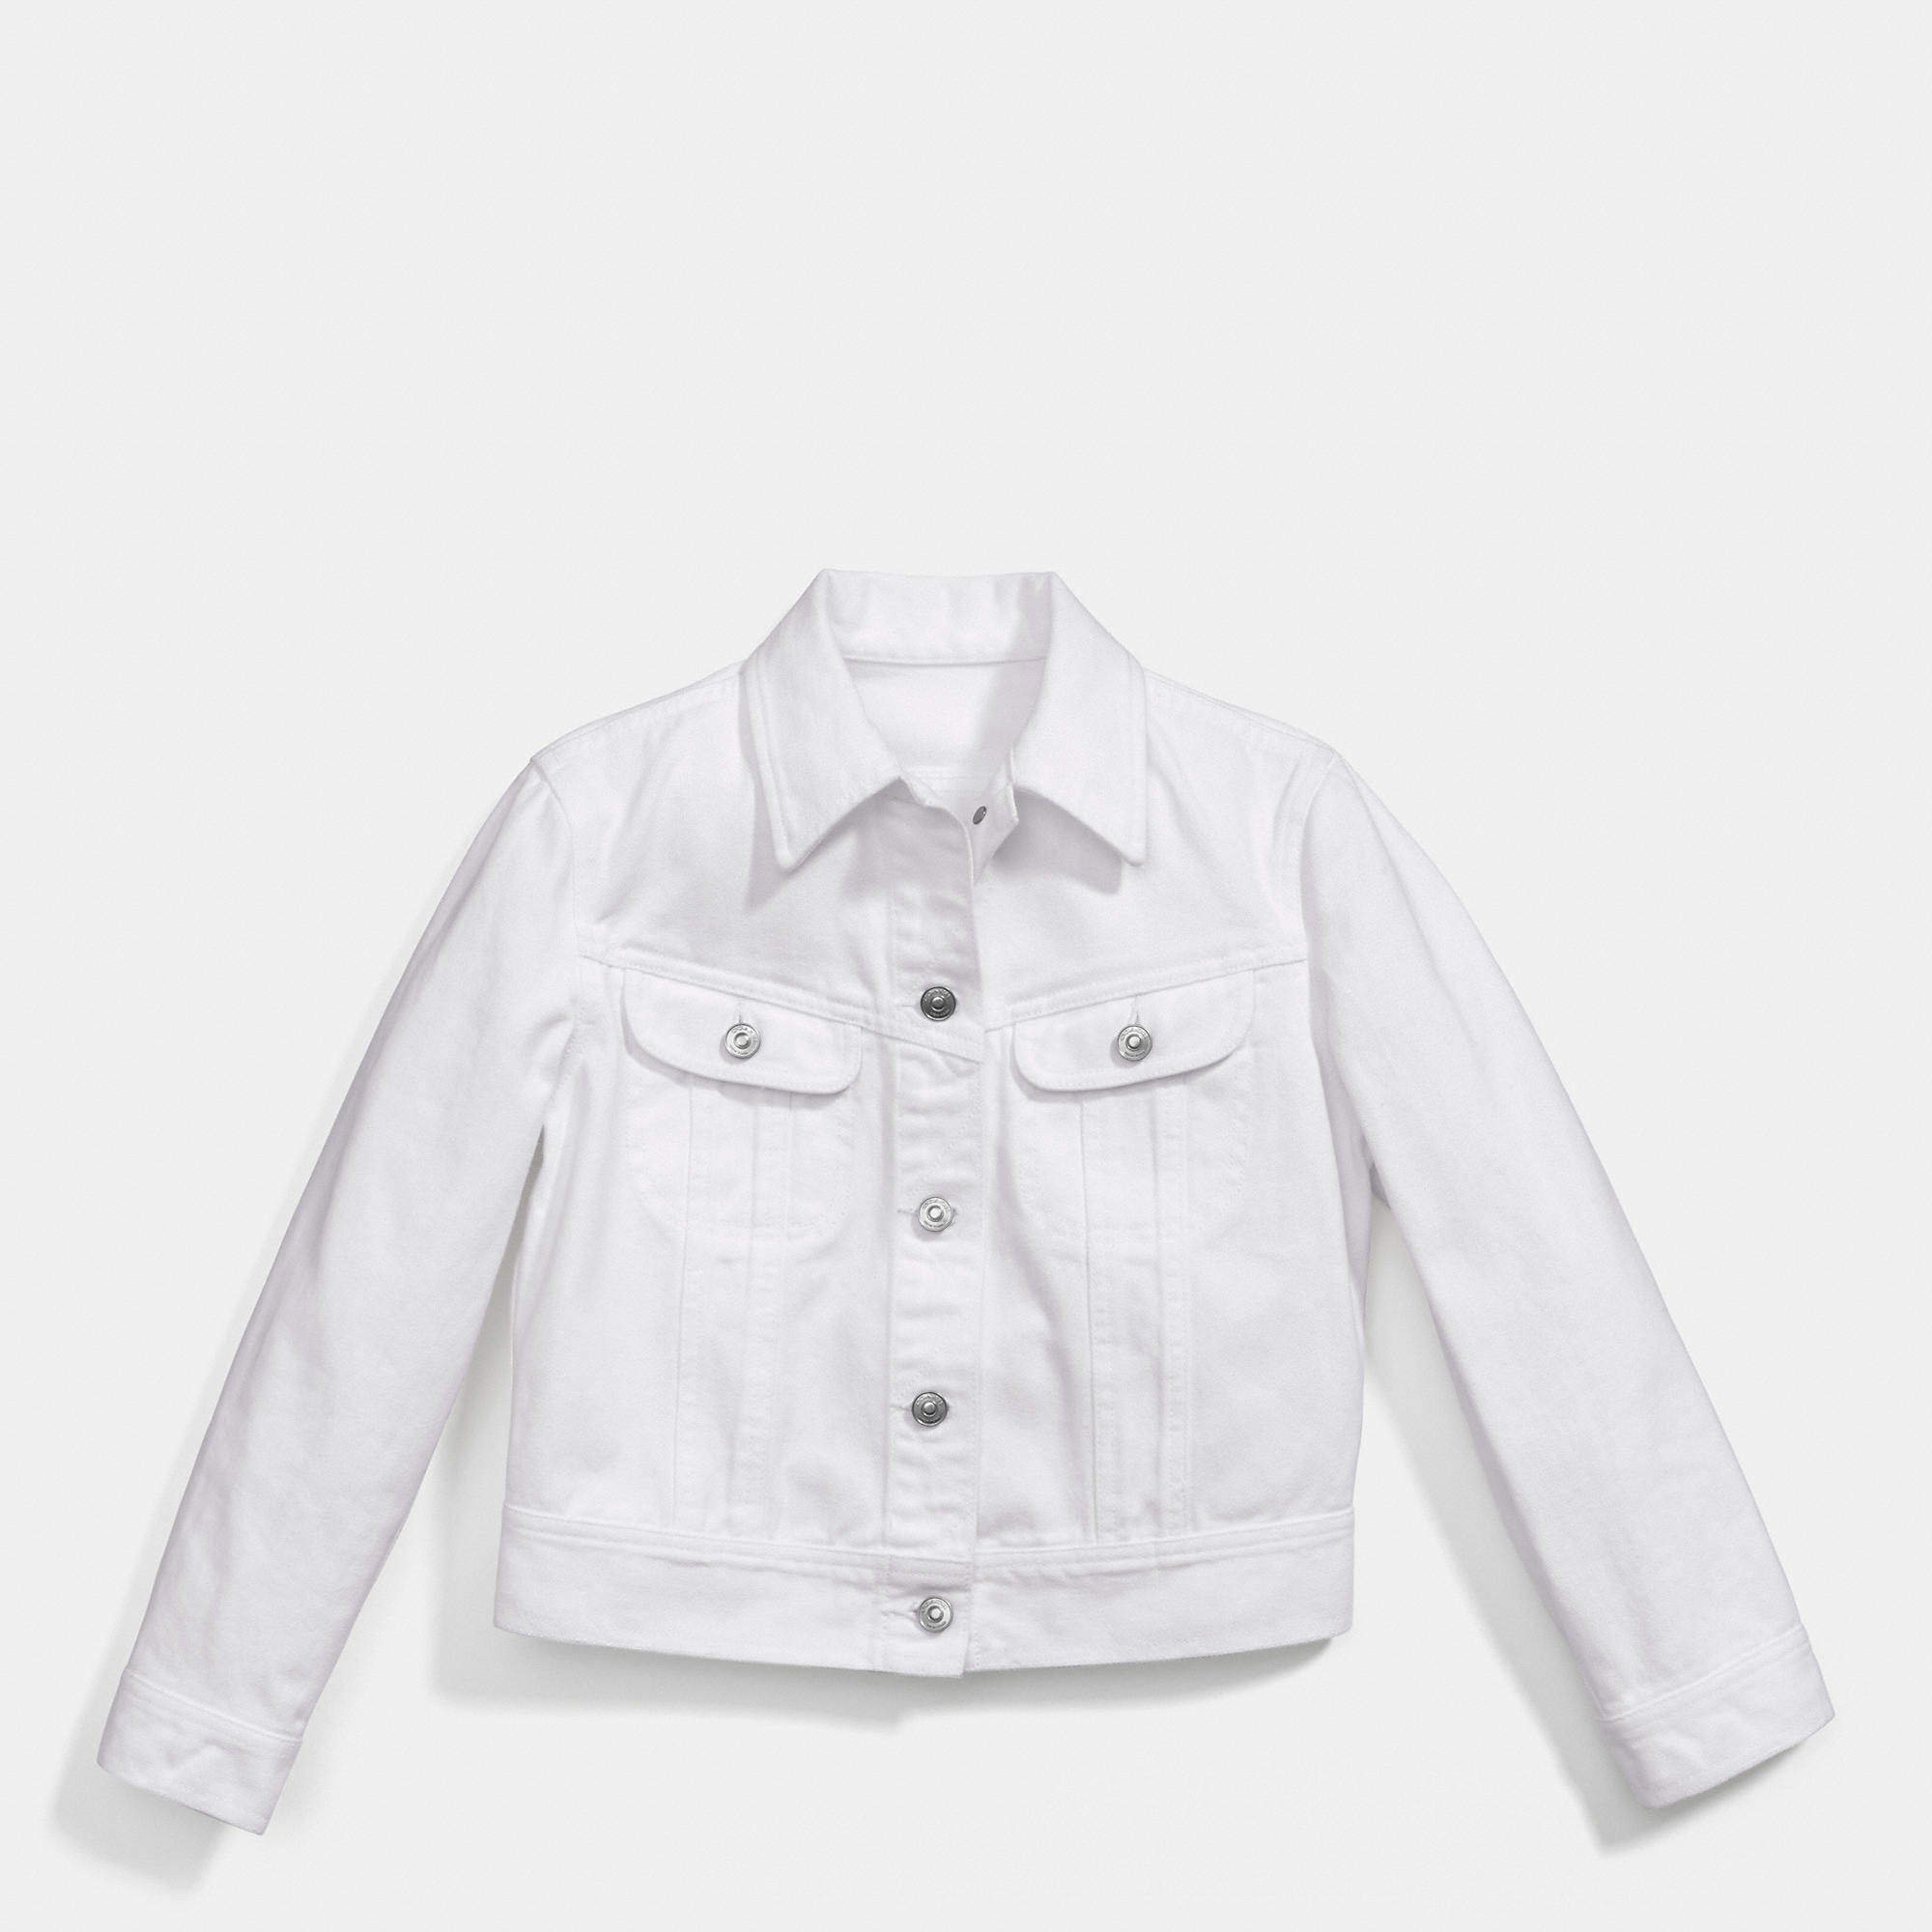 Coach White Denim Jean Jacket in White | Lyst